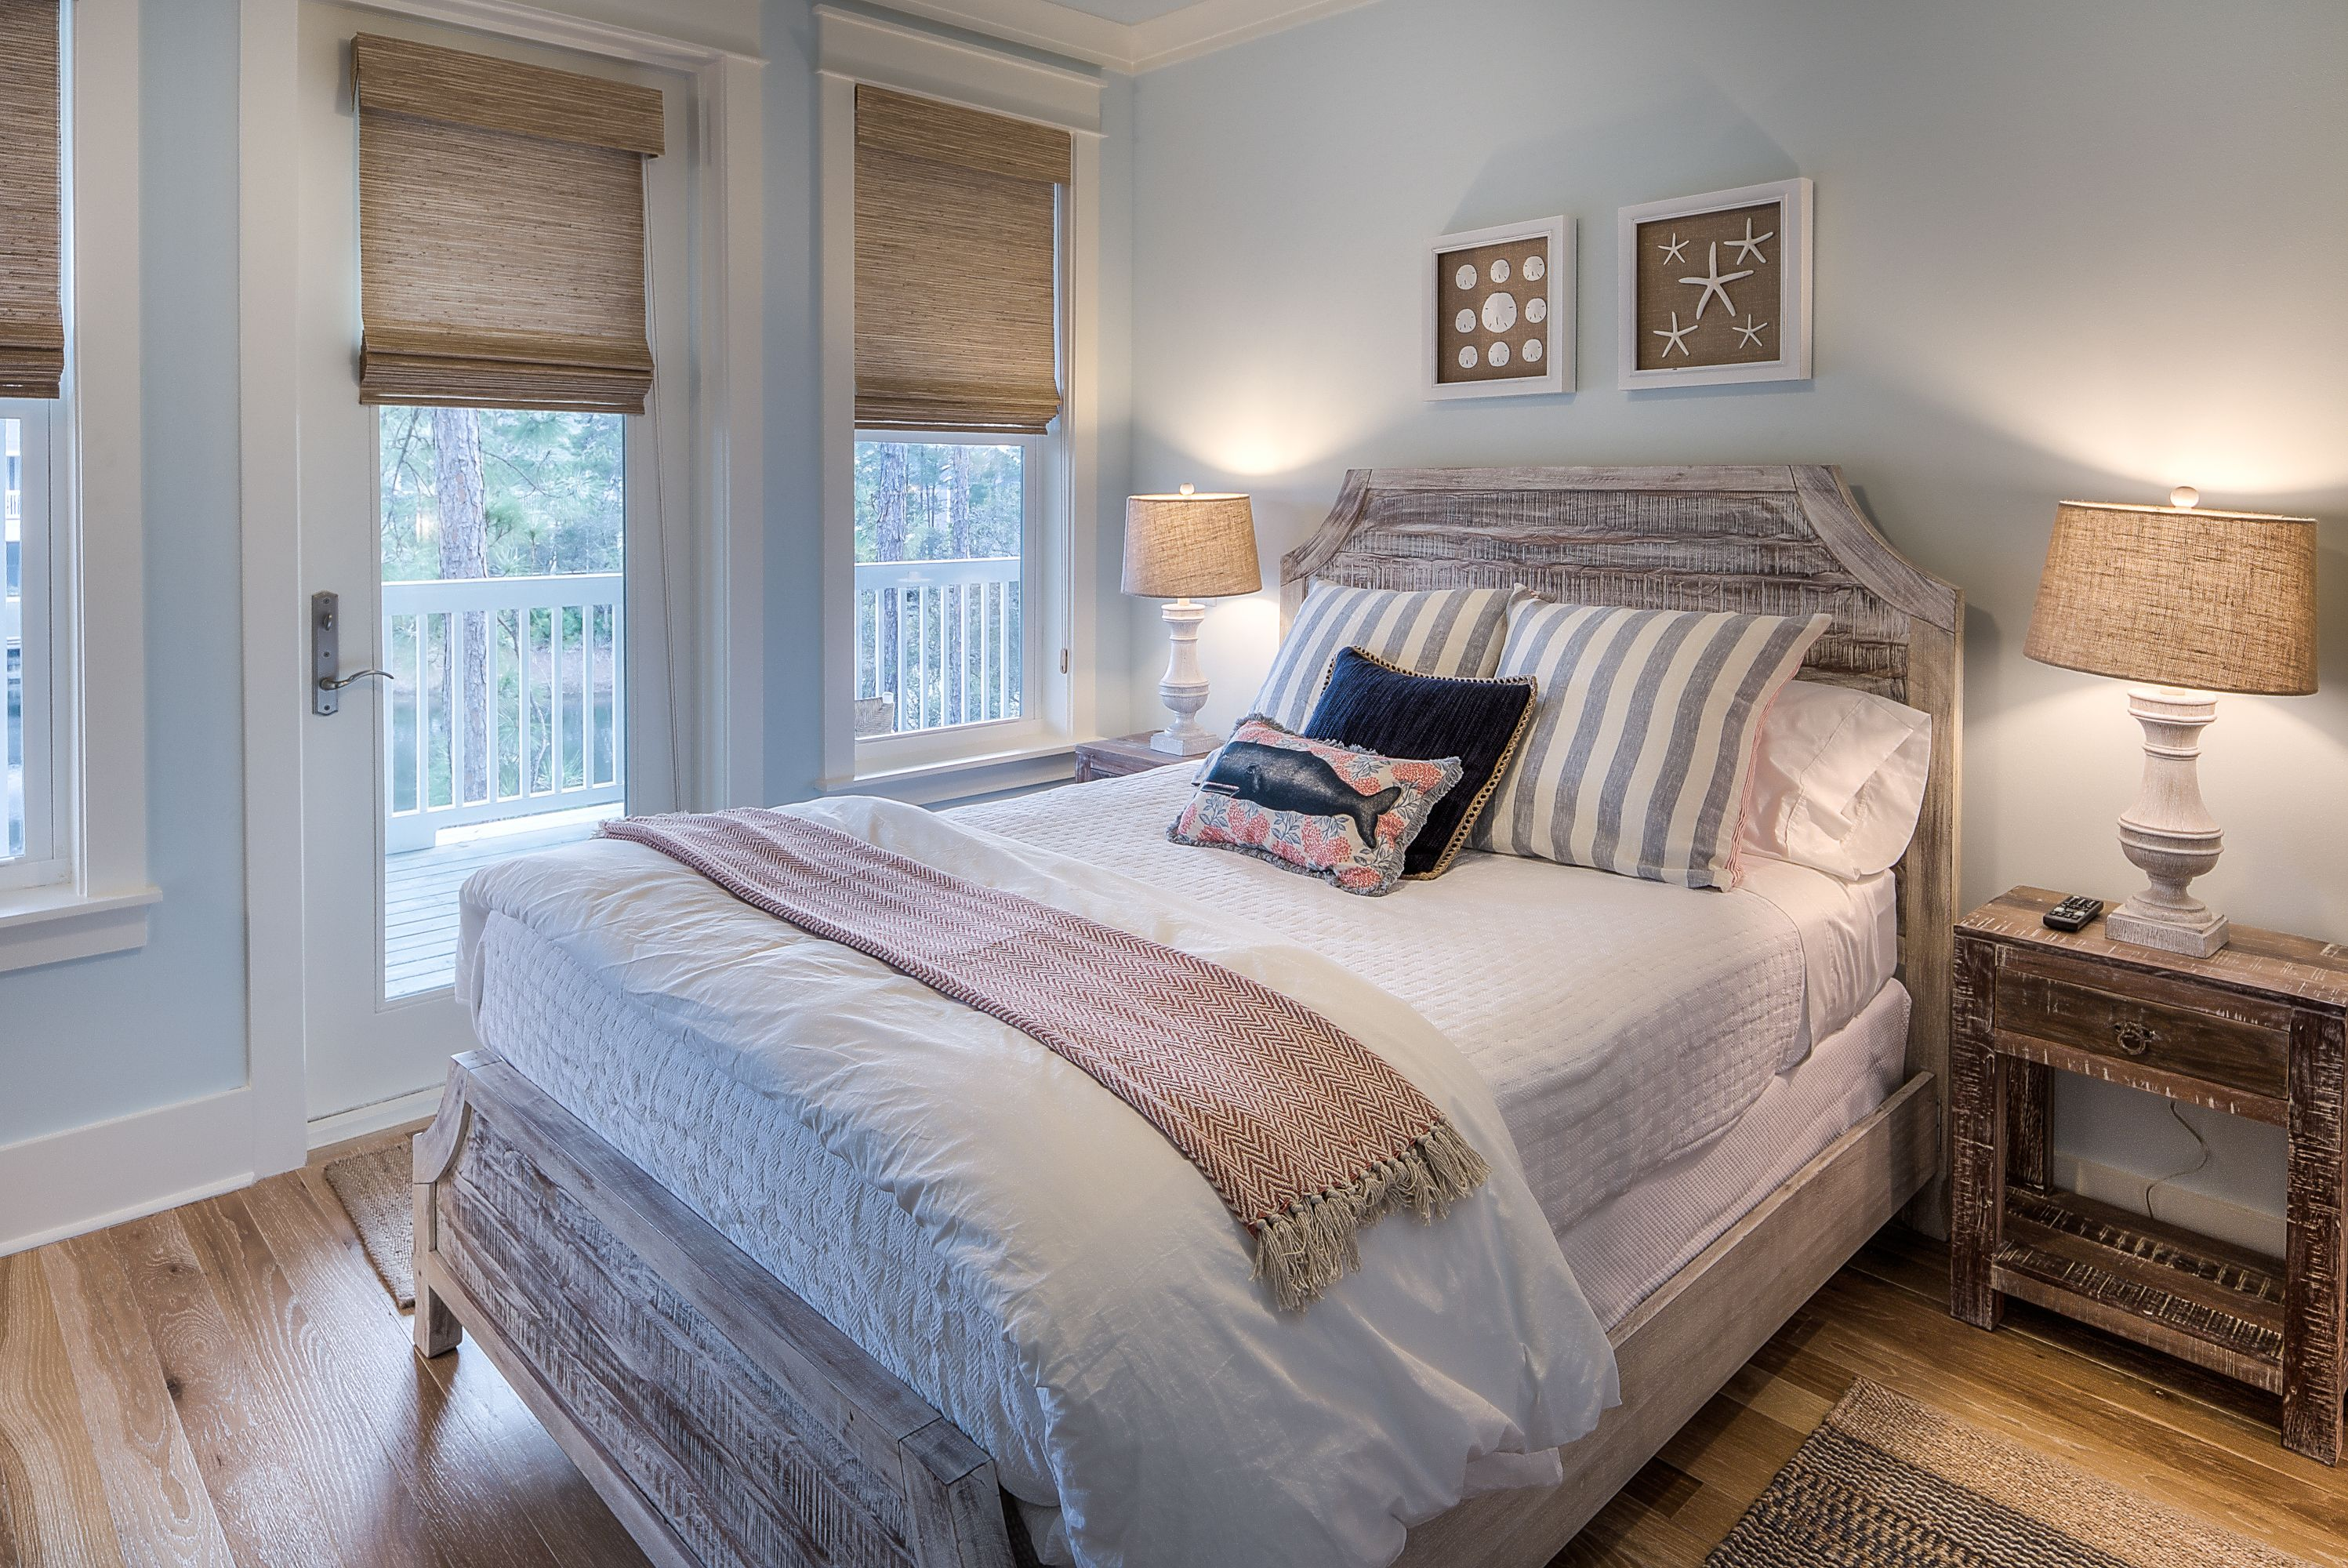 Beach house accessories bedroom beach style with